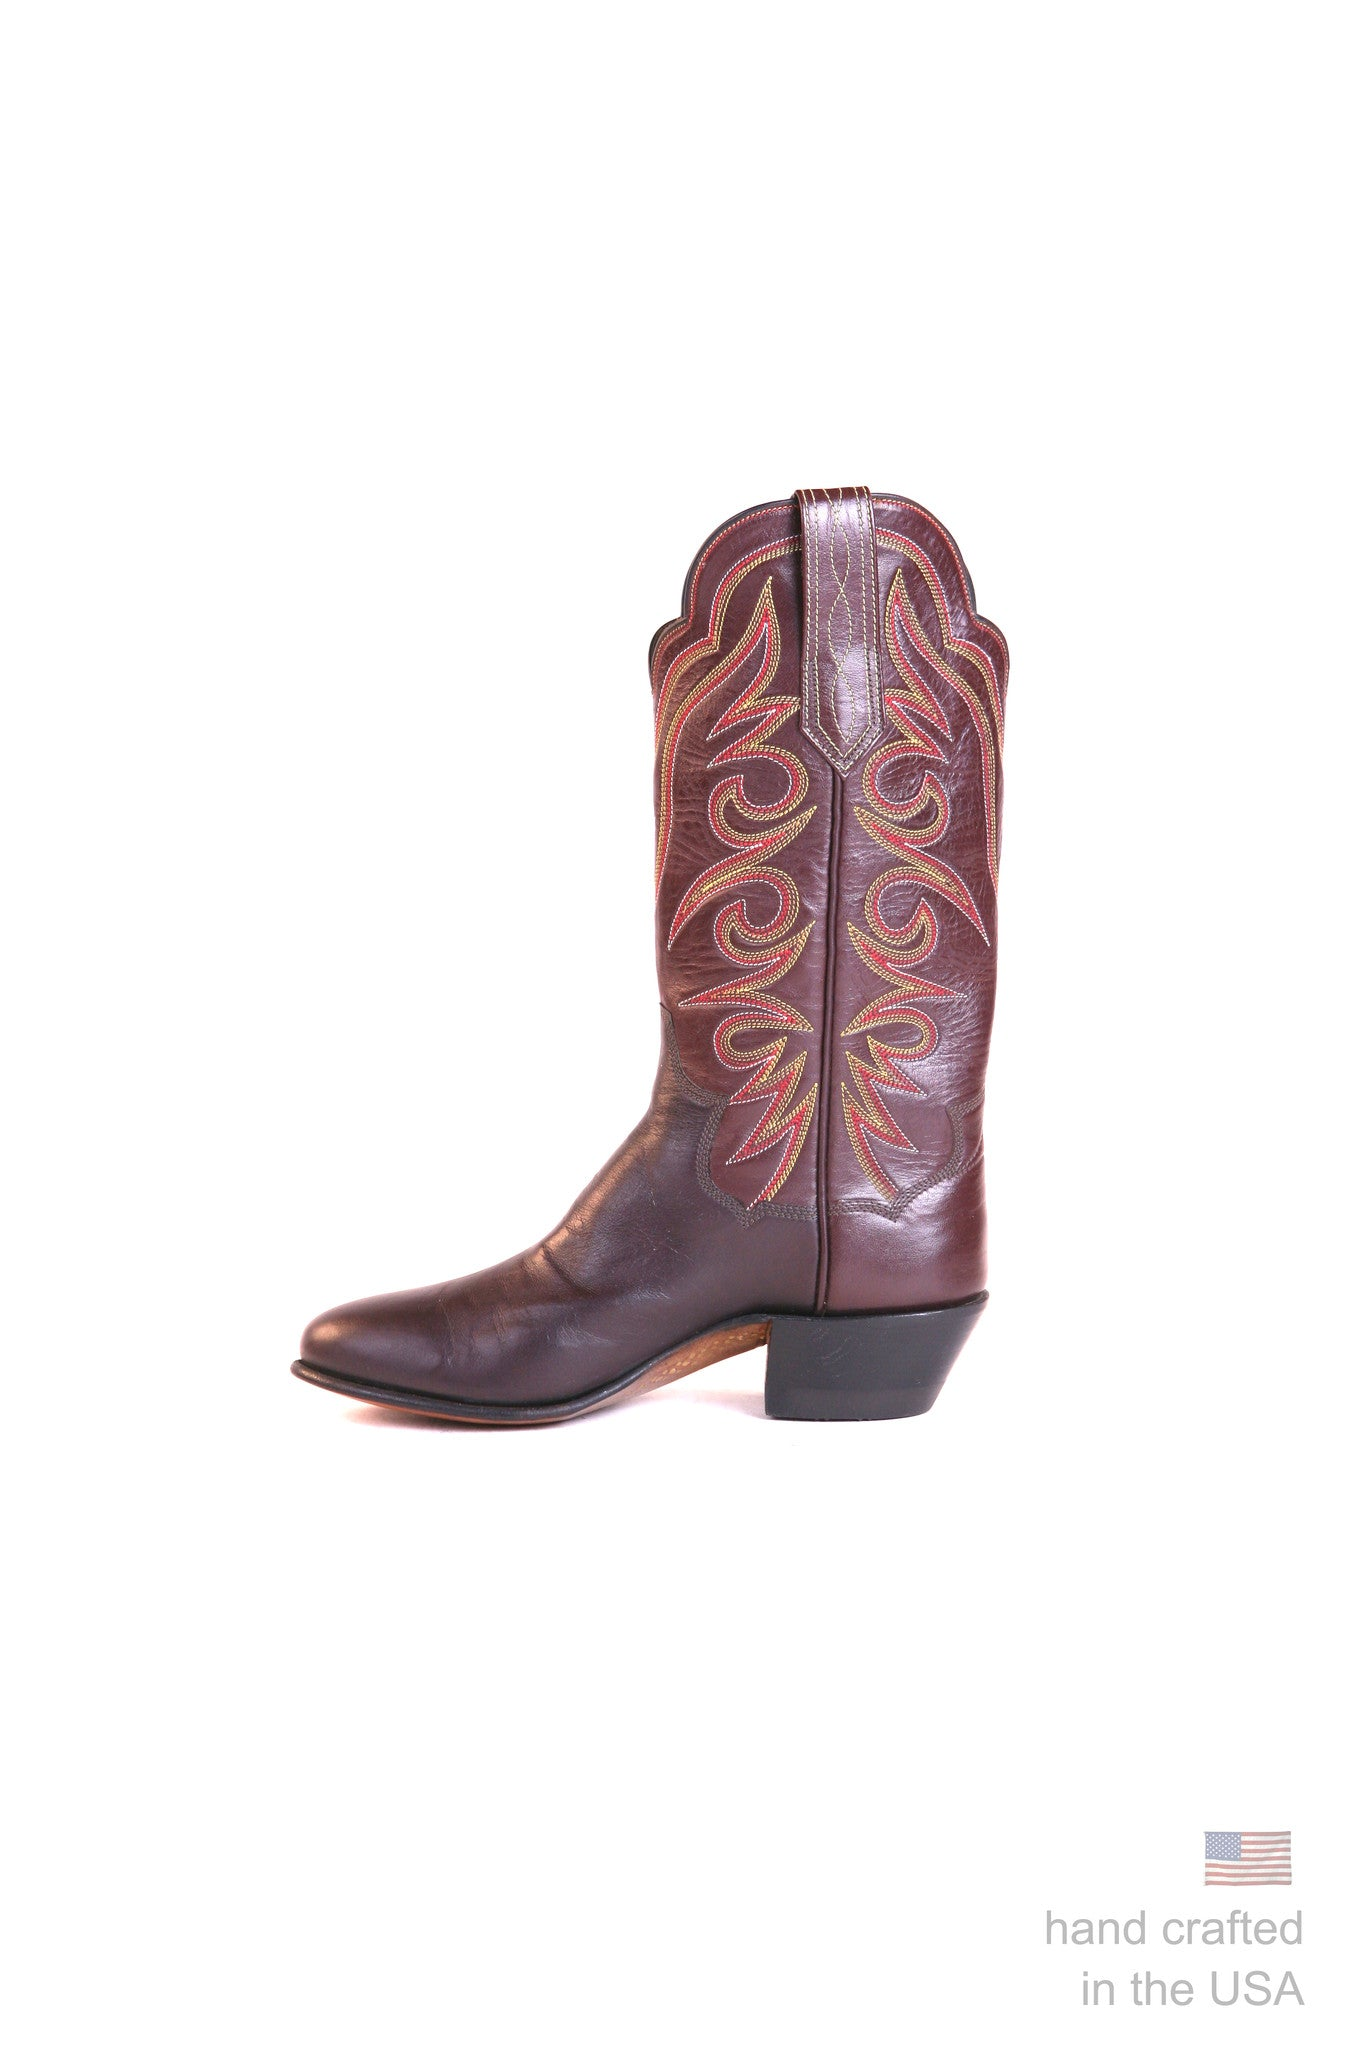 Singles: Boot 0062: Size 6.5 A